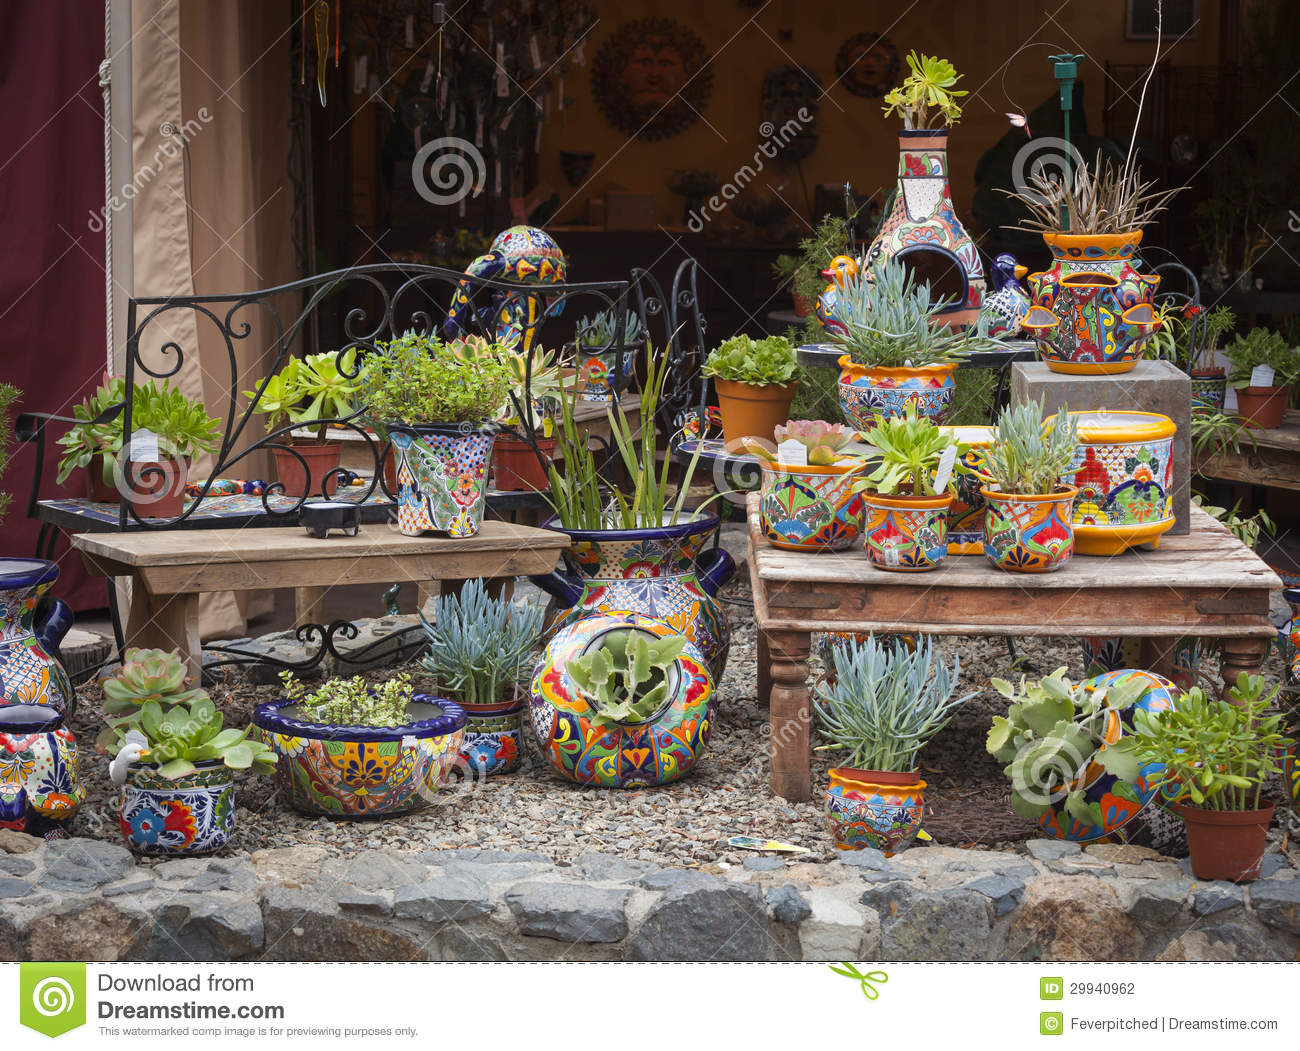 Royalty Free Stock Photo  Download Outdoor Shop Of Decorative. Outdoor Shop Of Decorative Pots And Succulents Stock Photography